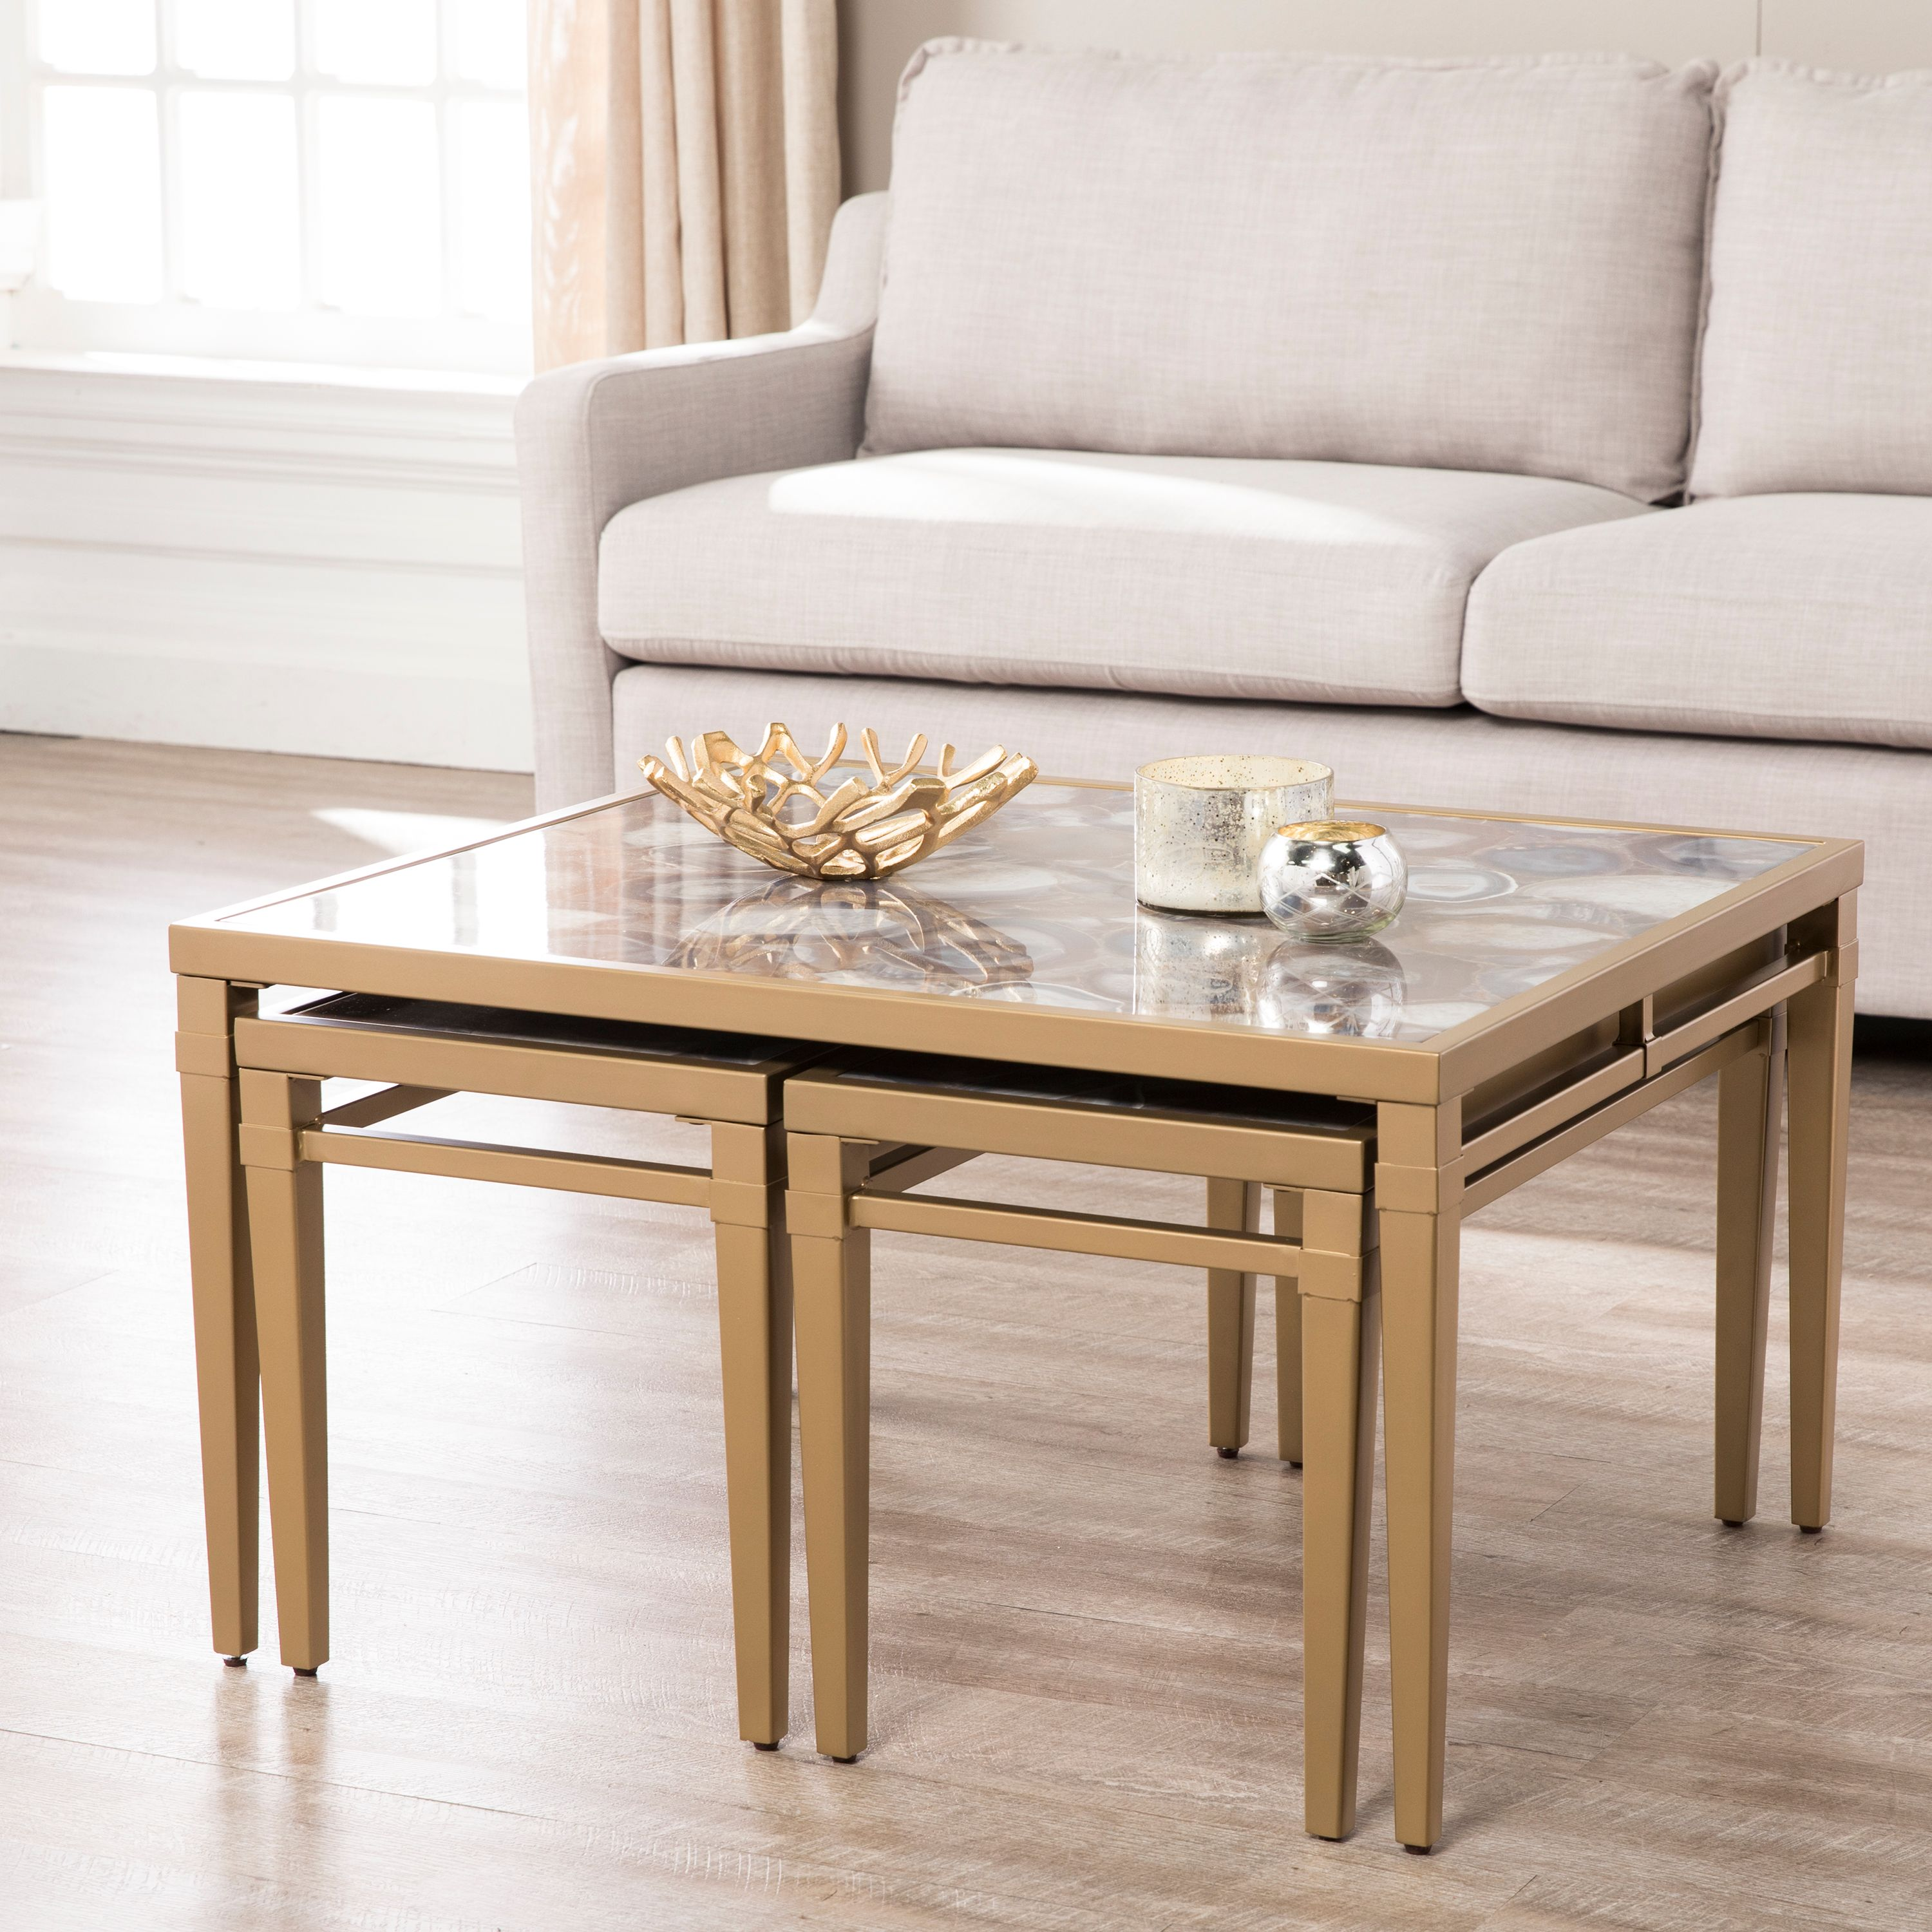 Eclectic Coffee Tables: Illsa Faux Stone Eclectic Nesting Coffee Tables, Gold